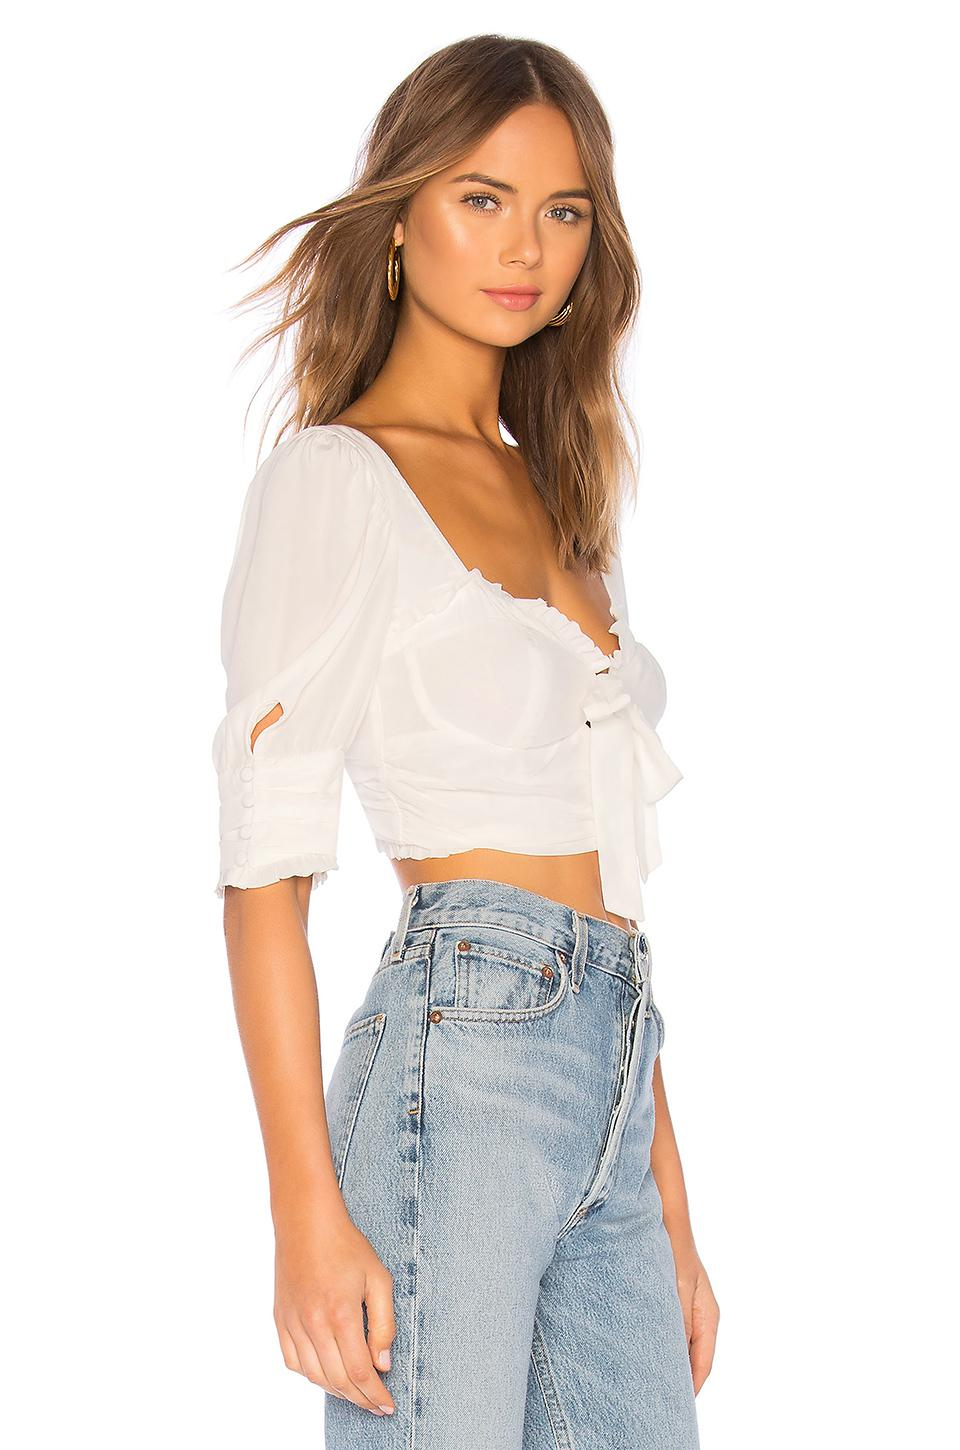 b61c20901a7f2 For Love   Lemons - Royale Crop Top In White - Lyst. View fullscreen